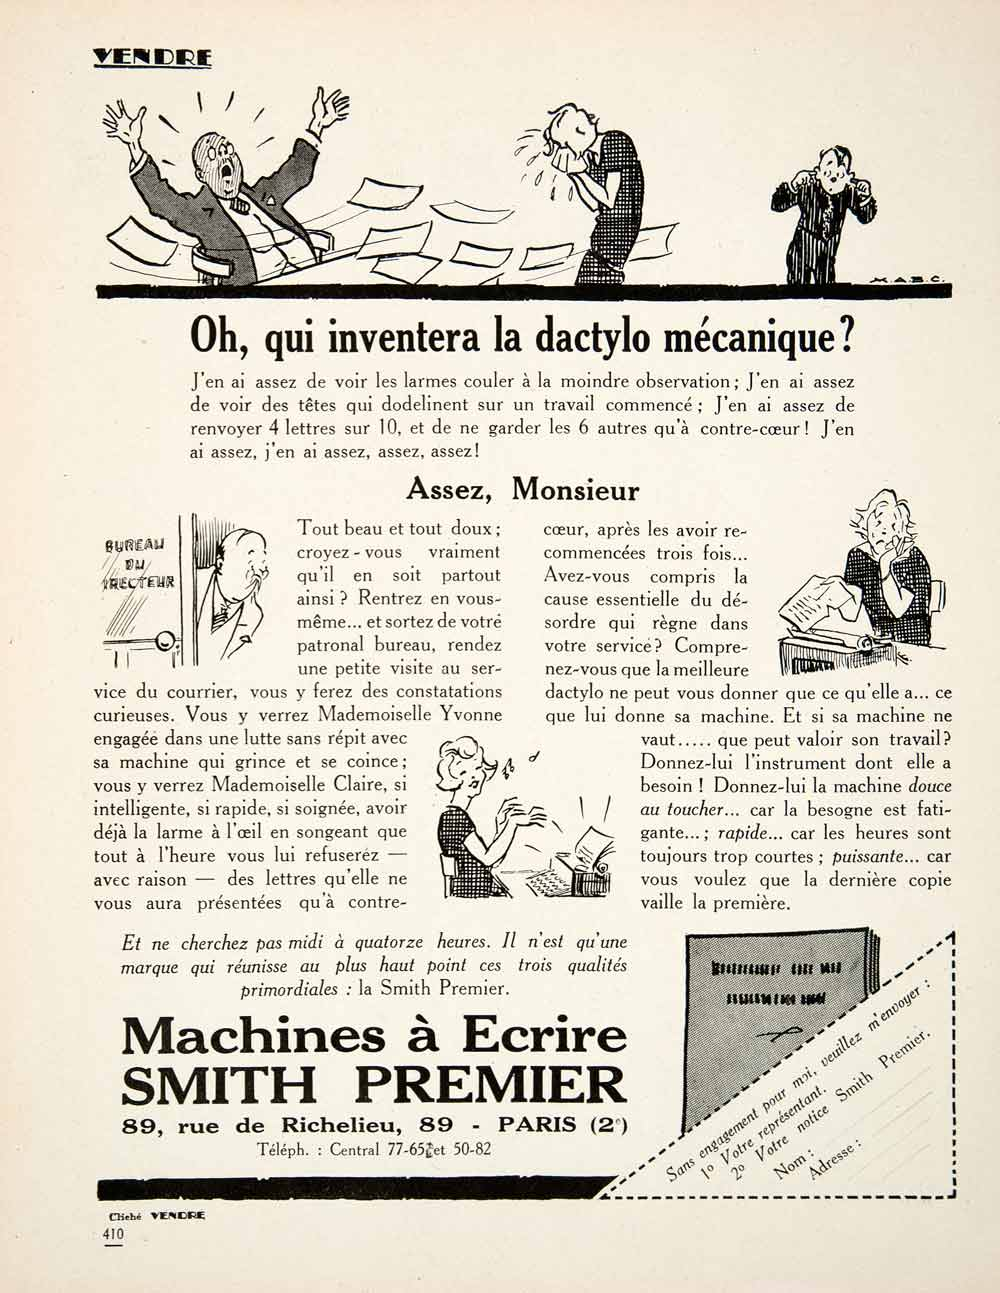 1926 Ad Smith Premier Typewriters 89 Rue Richelieu Paris Secretary Office VEN4